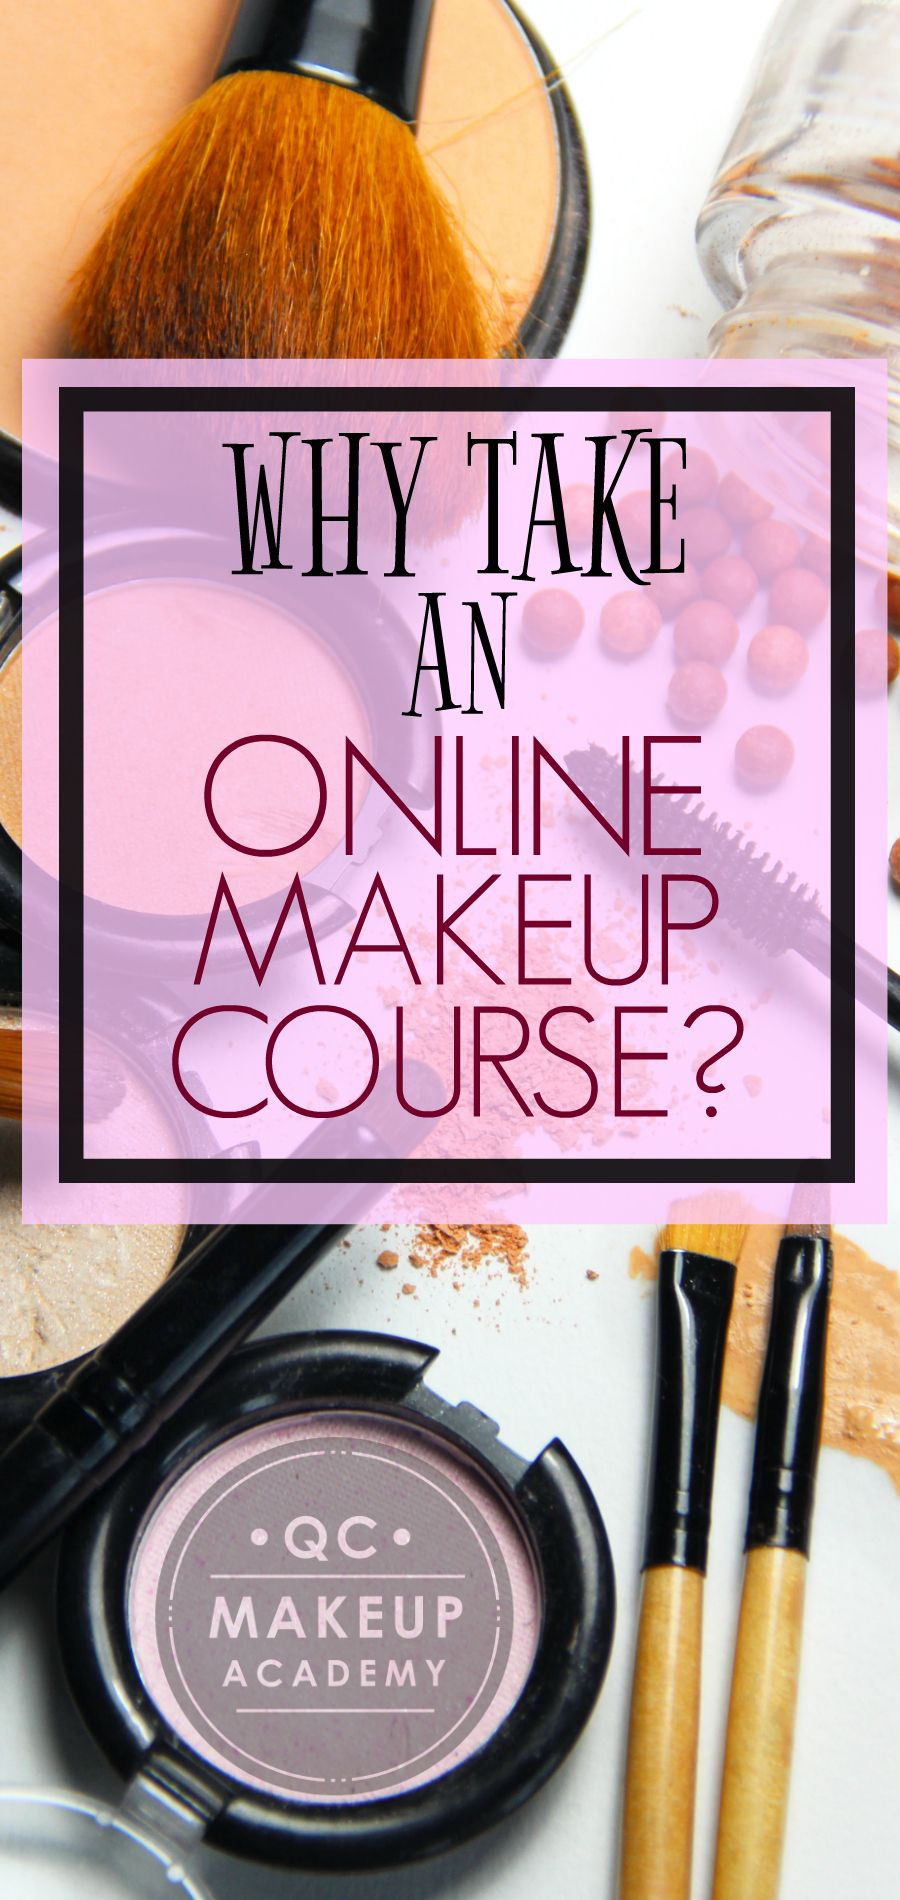 Why Take an Online Makeup Course? Online makeup courses